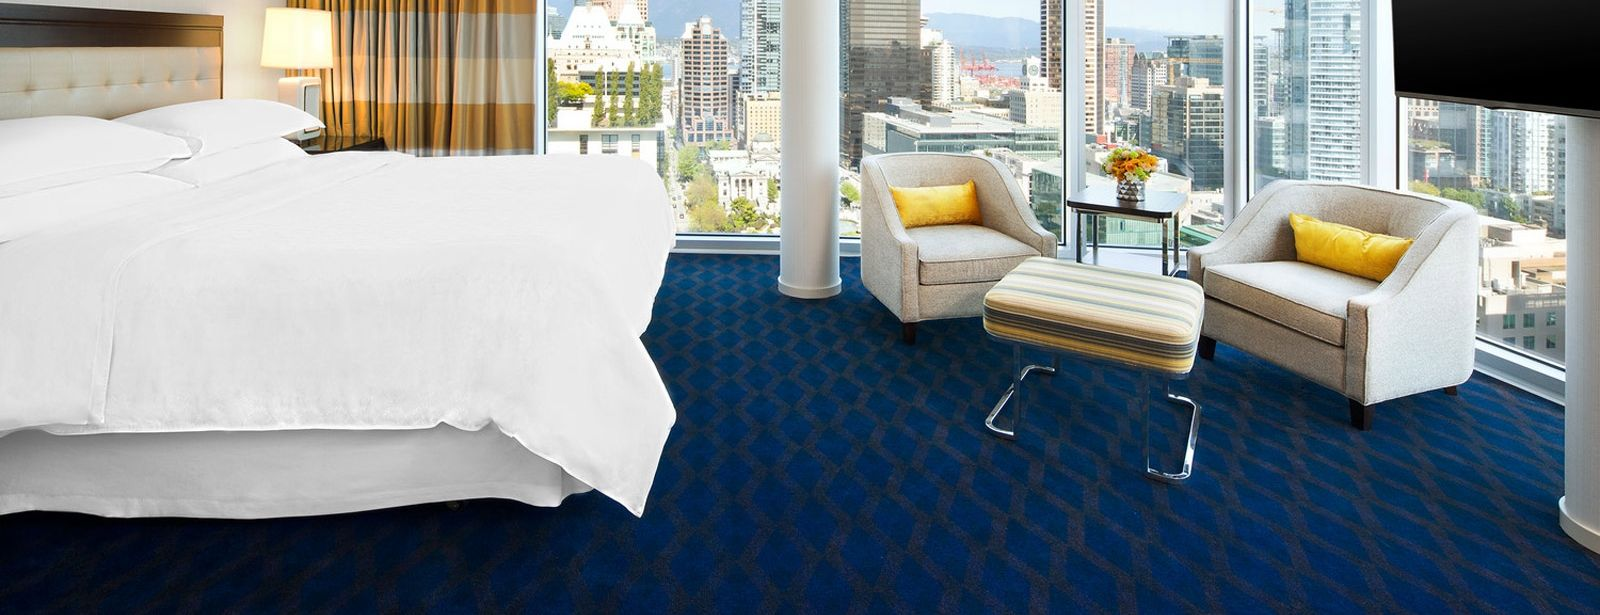 Vancouver Accommodation - Sheraton Vancouver Wall Centre